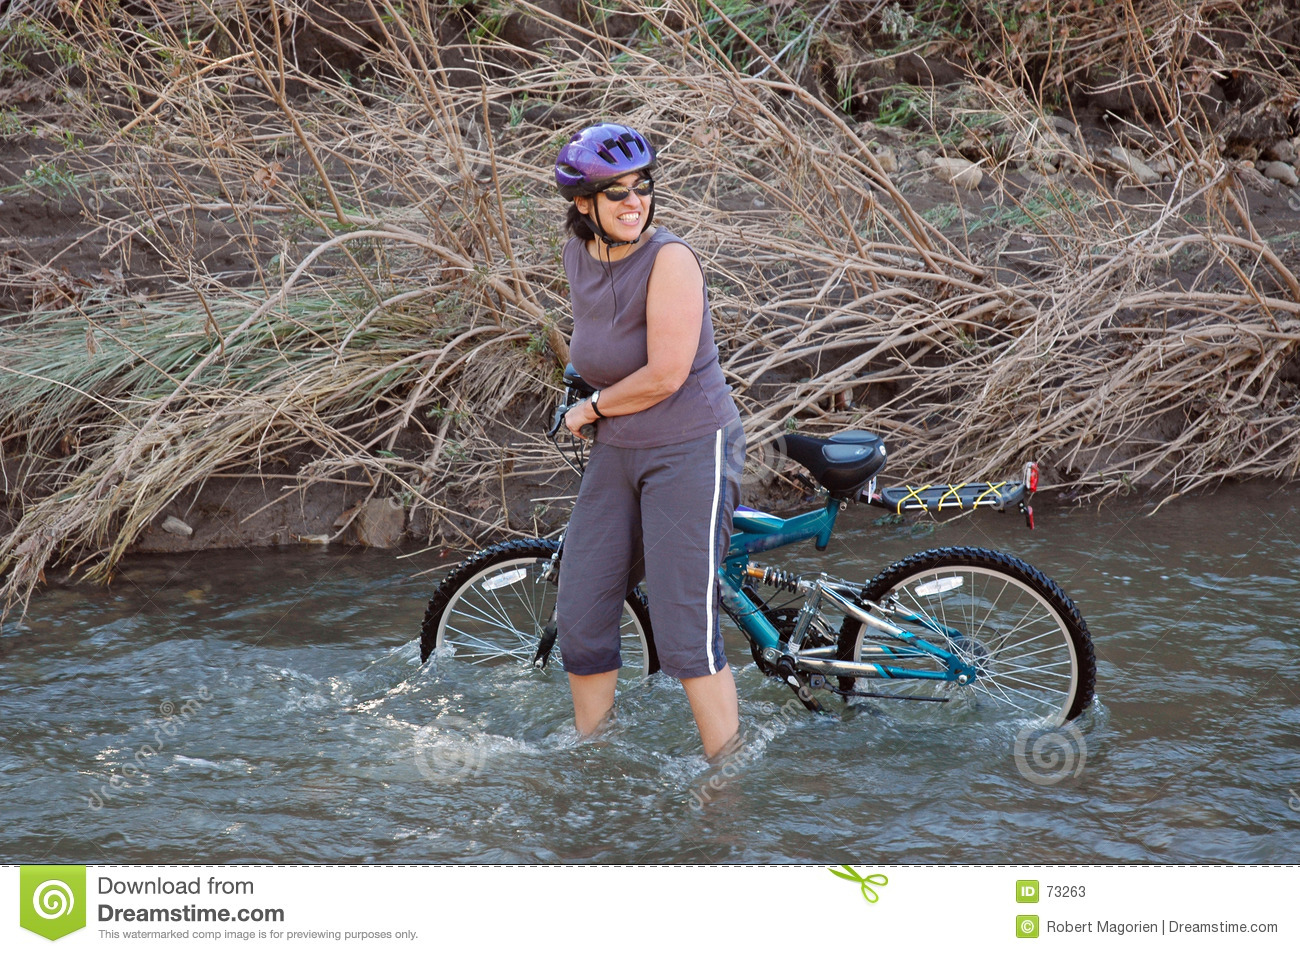 Women in stream with bike